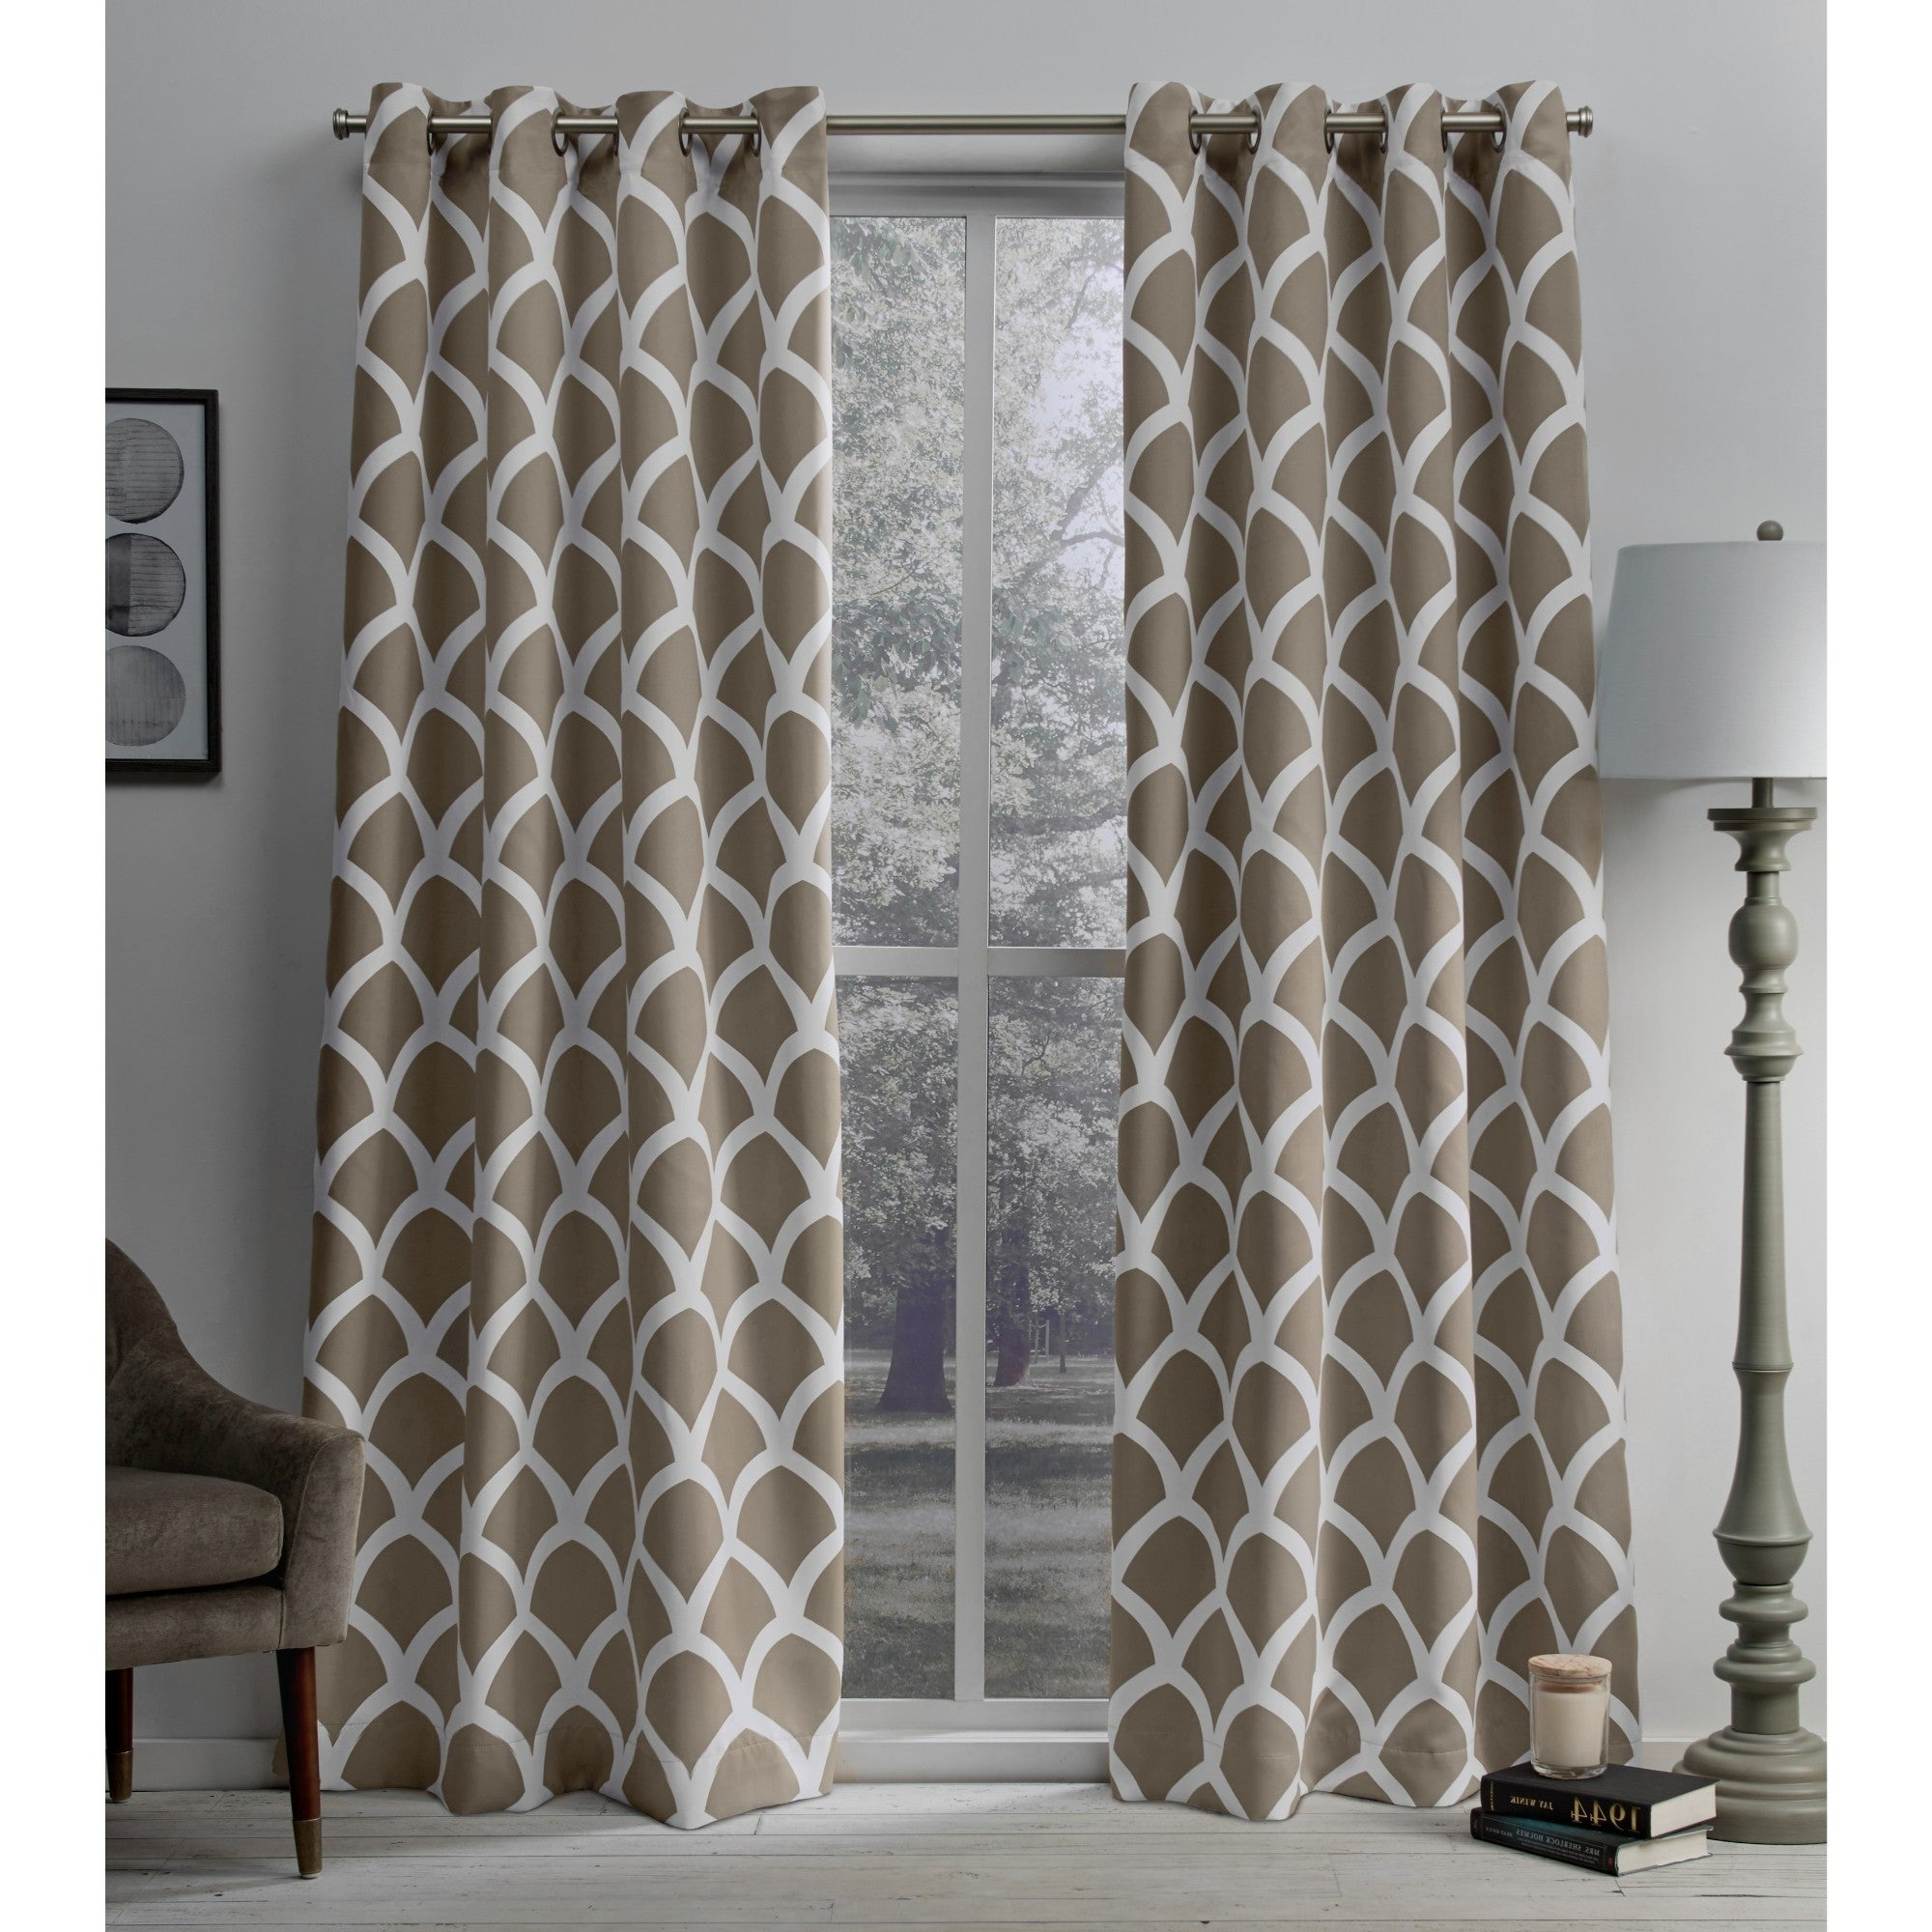 Newest The Curated Nomad Ames Sateen Woven Blackout Grommet Top Curtain Panel Pair Pertaining To The Curated Nomad Duane Jacquard Grommet Top Curtain Panel Pairs (View 6 of 21)